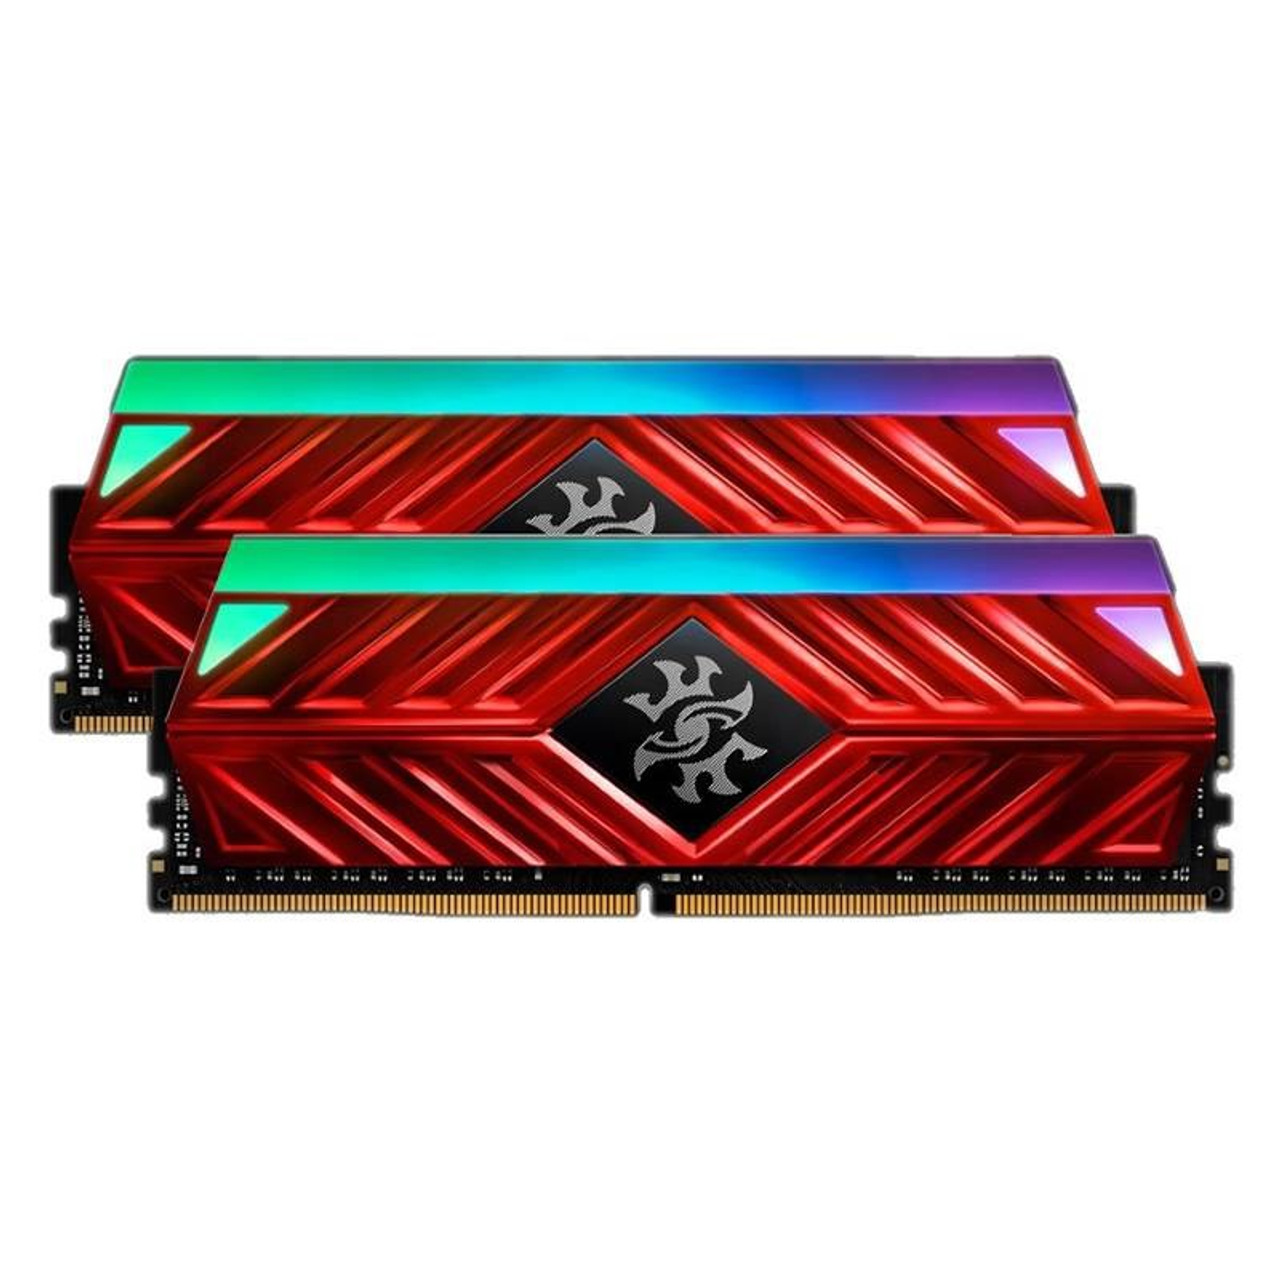 Image for Adata XPG Spectrix D41 16GB (2x8GB) DDR4 3200MHz RGB Memory - Crimson Red CX Computer Superstore